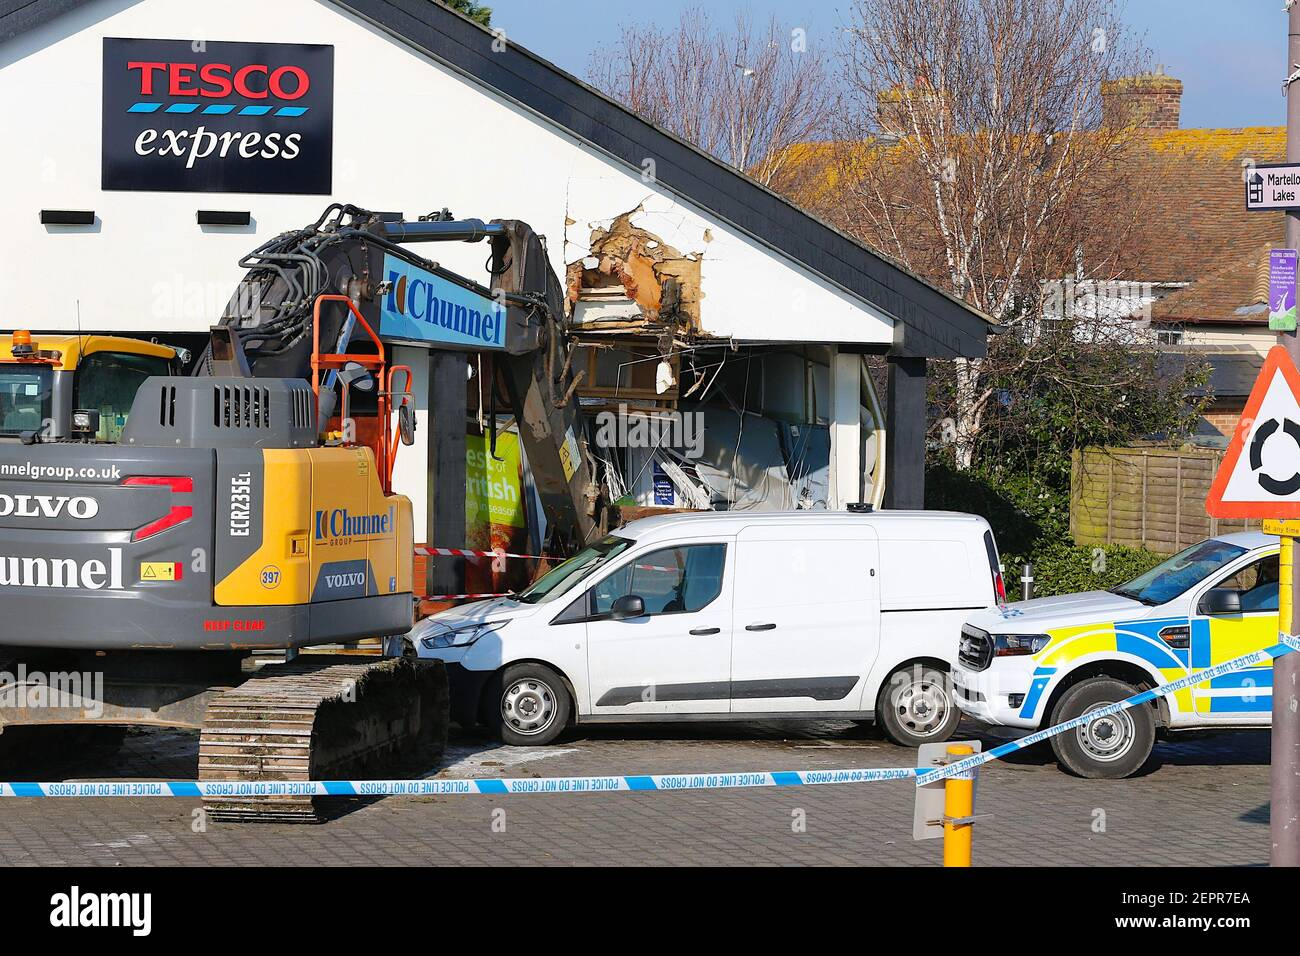 Dymchurch, Kent, UK. 28 February, 2021. Emboldened thief's have attempted a daring raid on this Tesco express in Dymchurch Hugh street having driven a Volvo ECR235E crawler excavator in the early hours of the morning in an attempt to rob the store. According to member of staff, assailants failed to take a cash point as it now lies on the floor with 'loads of money' lying around. A corner of the building lies in tatters. Photo Credit: Paul Lawrenson/Alamy Live News Stock Photo